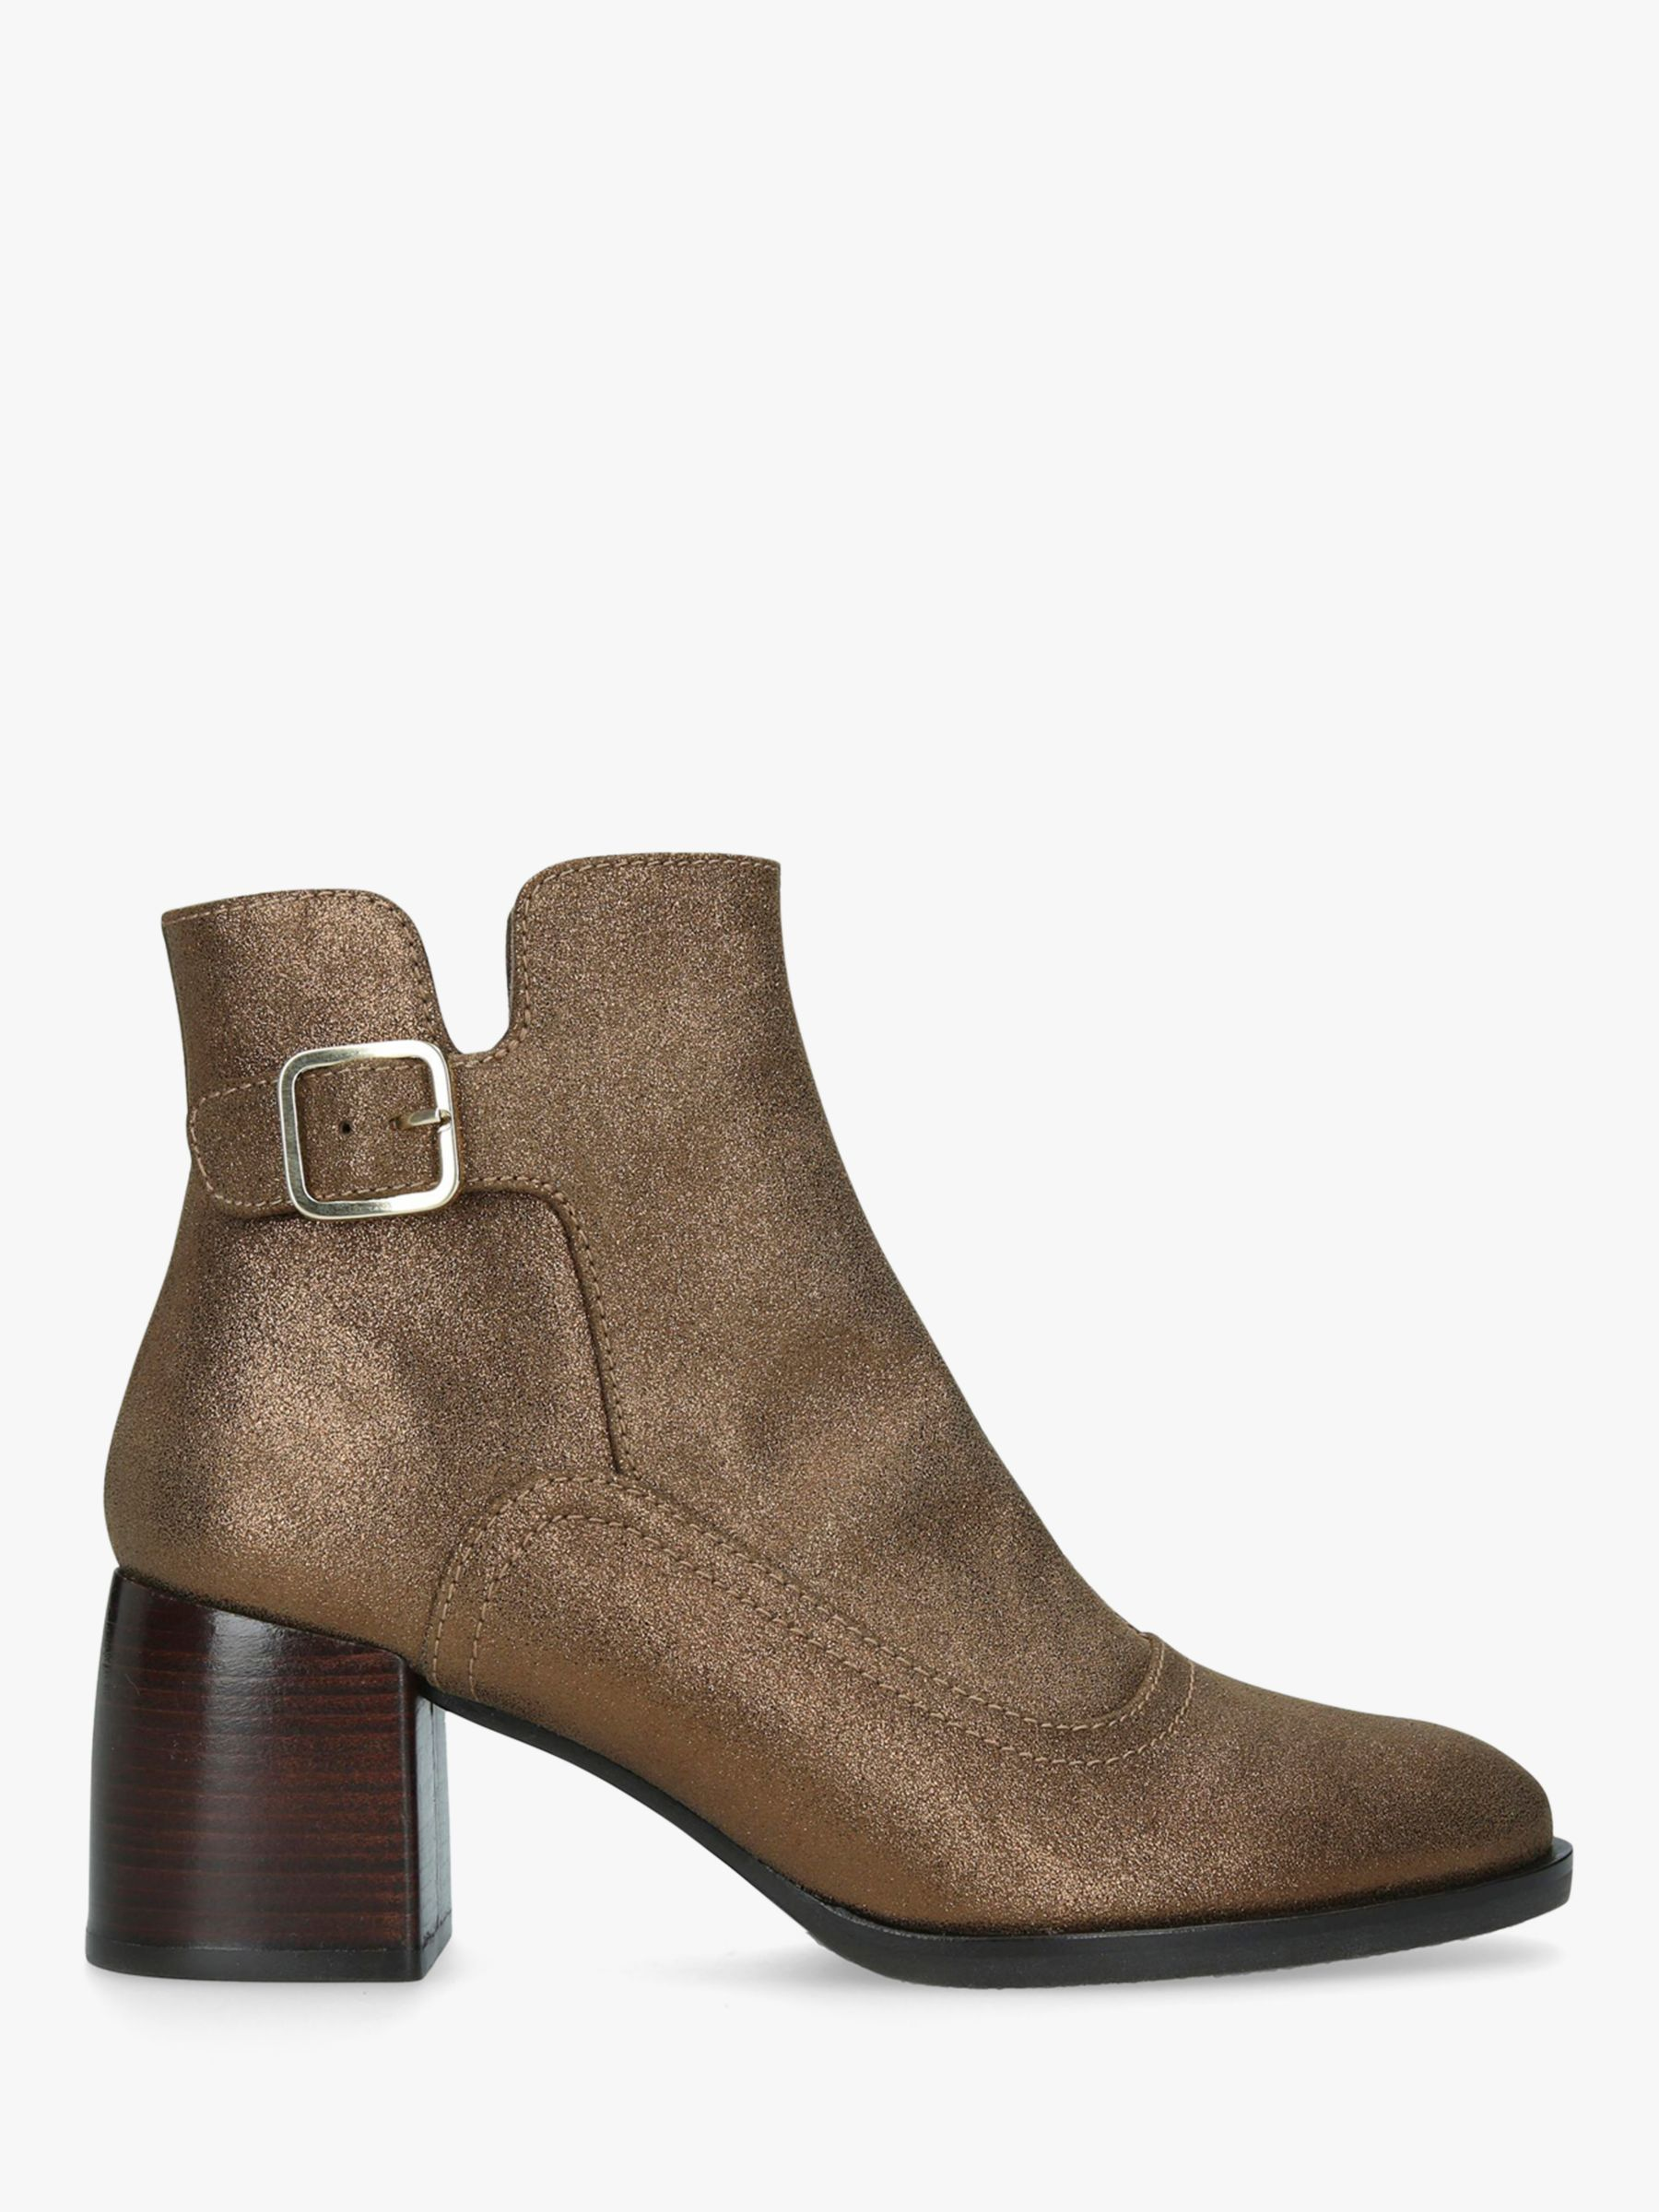 Chie Mihara Chie Mihara Or-Omayo Block Heel Ankle Boots, Gold